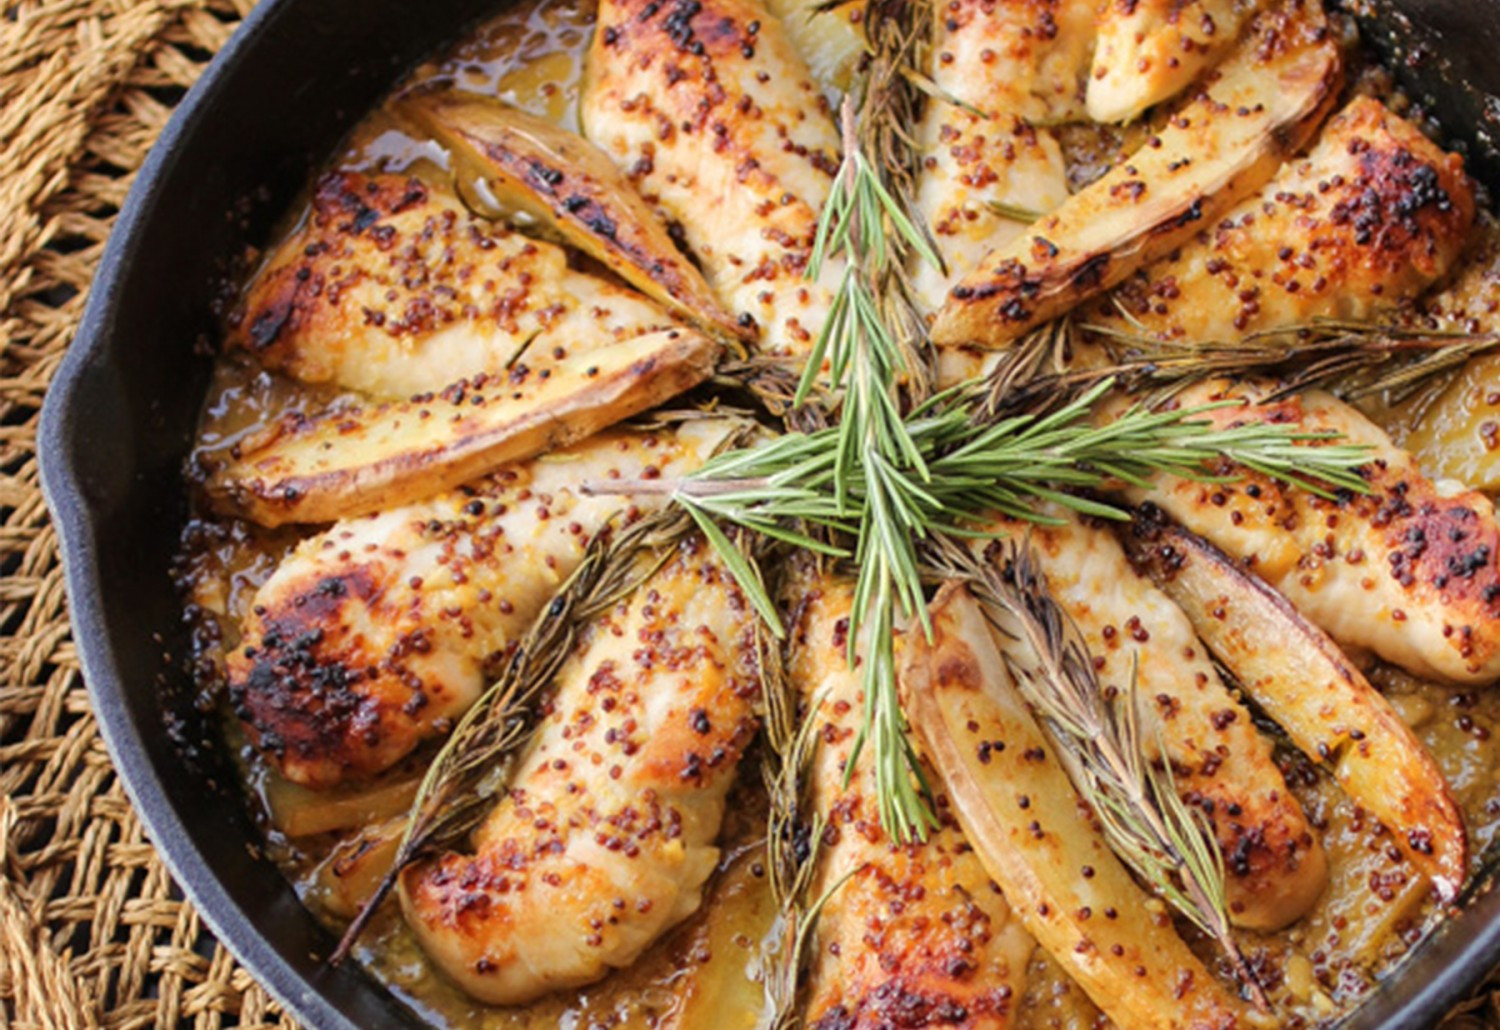 Healthy Skillet Dinners  e Pot Meals to Make in Your Skillet